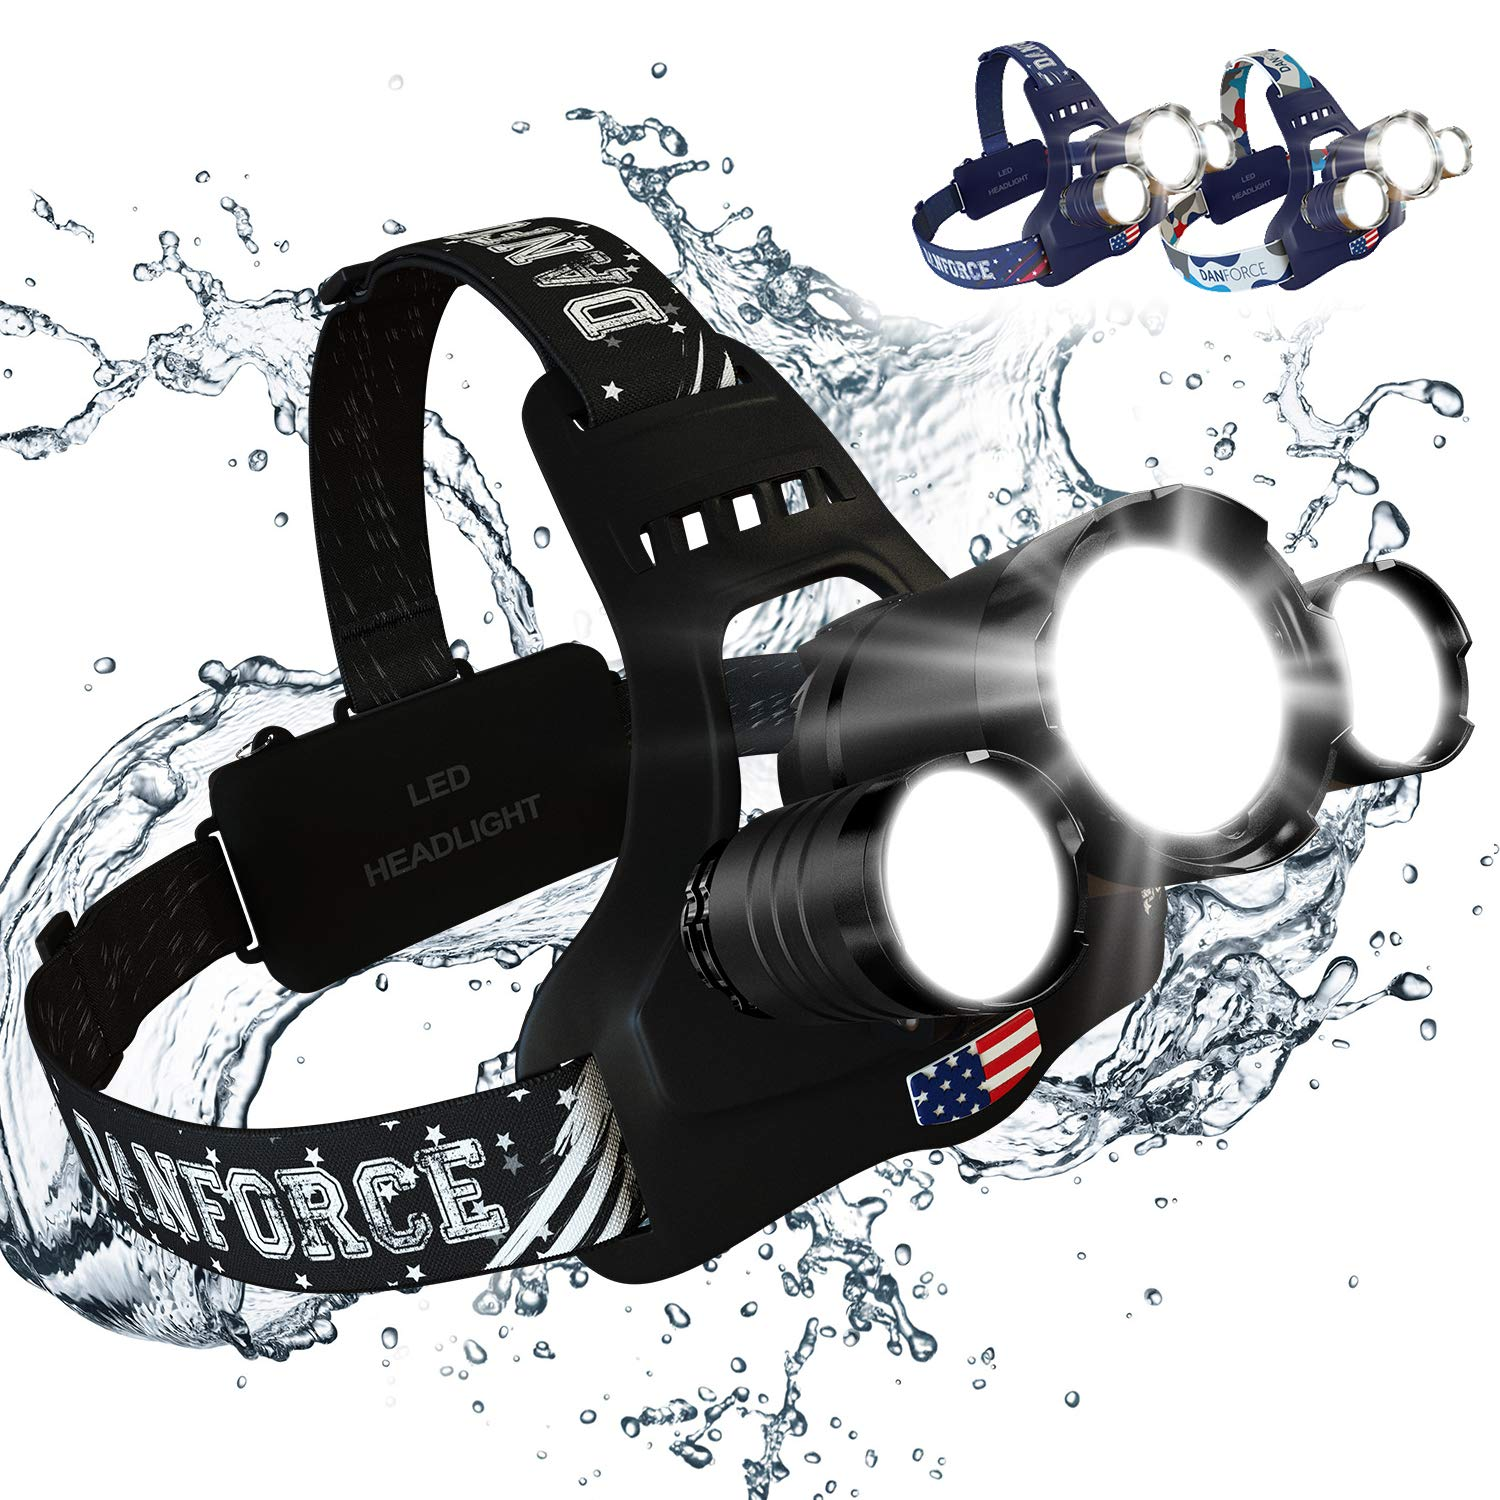 DanForce Headlamp, Ultra Bright Rechargeable LED Headlamp,CREE 1080 Lumens,Zoomable Head Lamp Flashlight. Headlight USB Rechargeable, IPX45 HeadLamps for Camping, Outdoors, Adults,Red Light Include. by DanForce